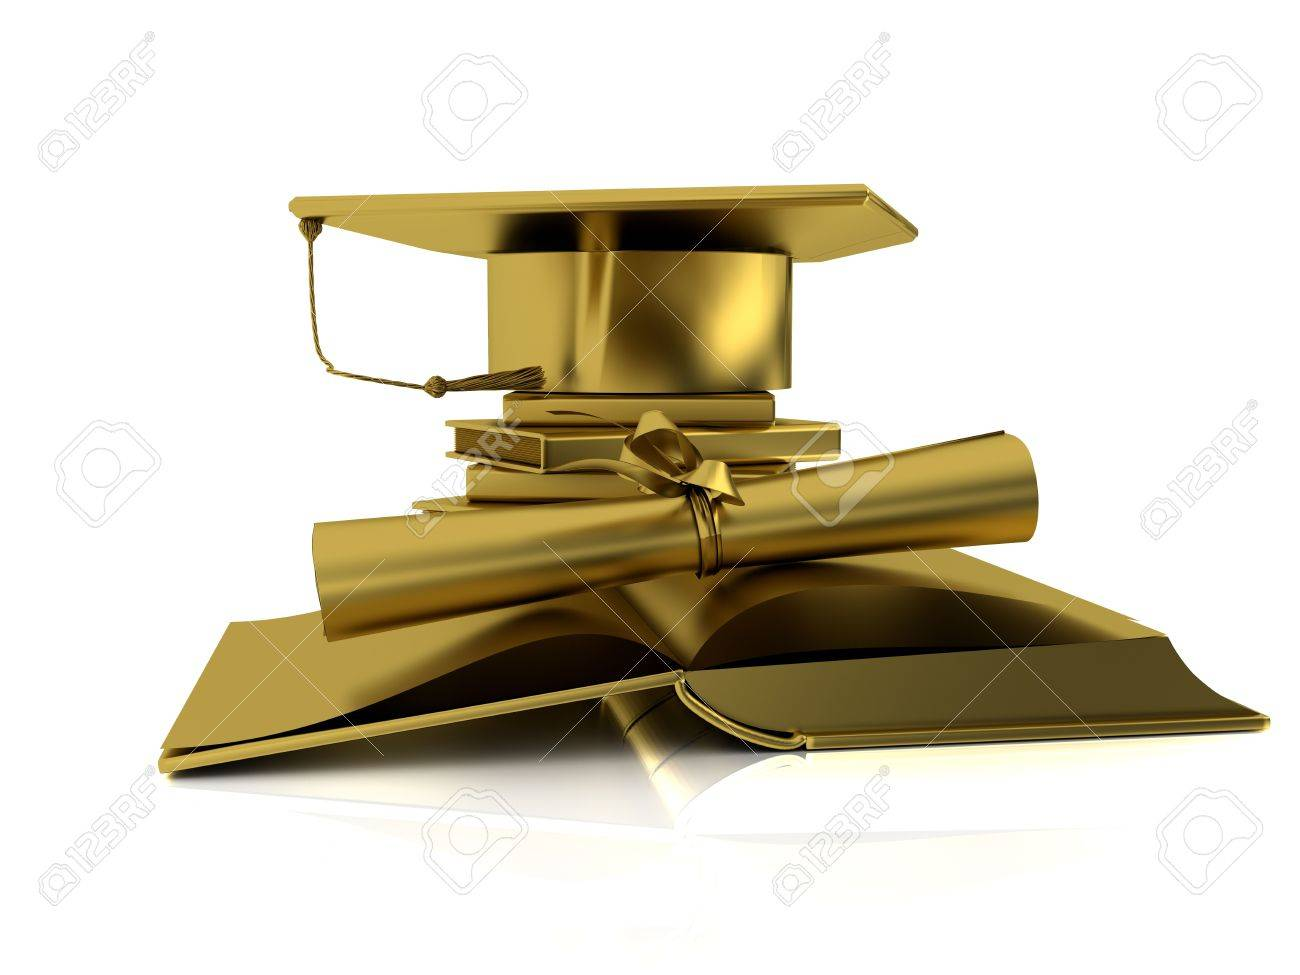 golden bachelor cap diploma and open books on mirror plane stock photo 5825960